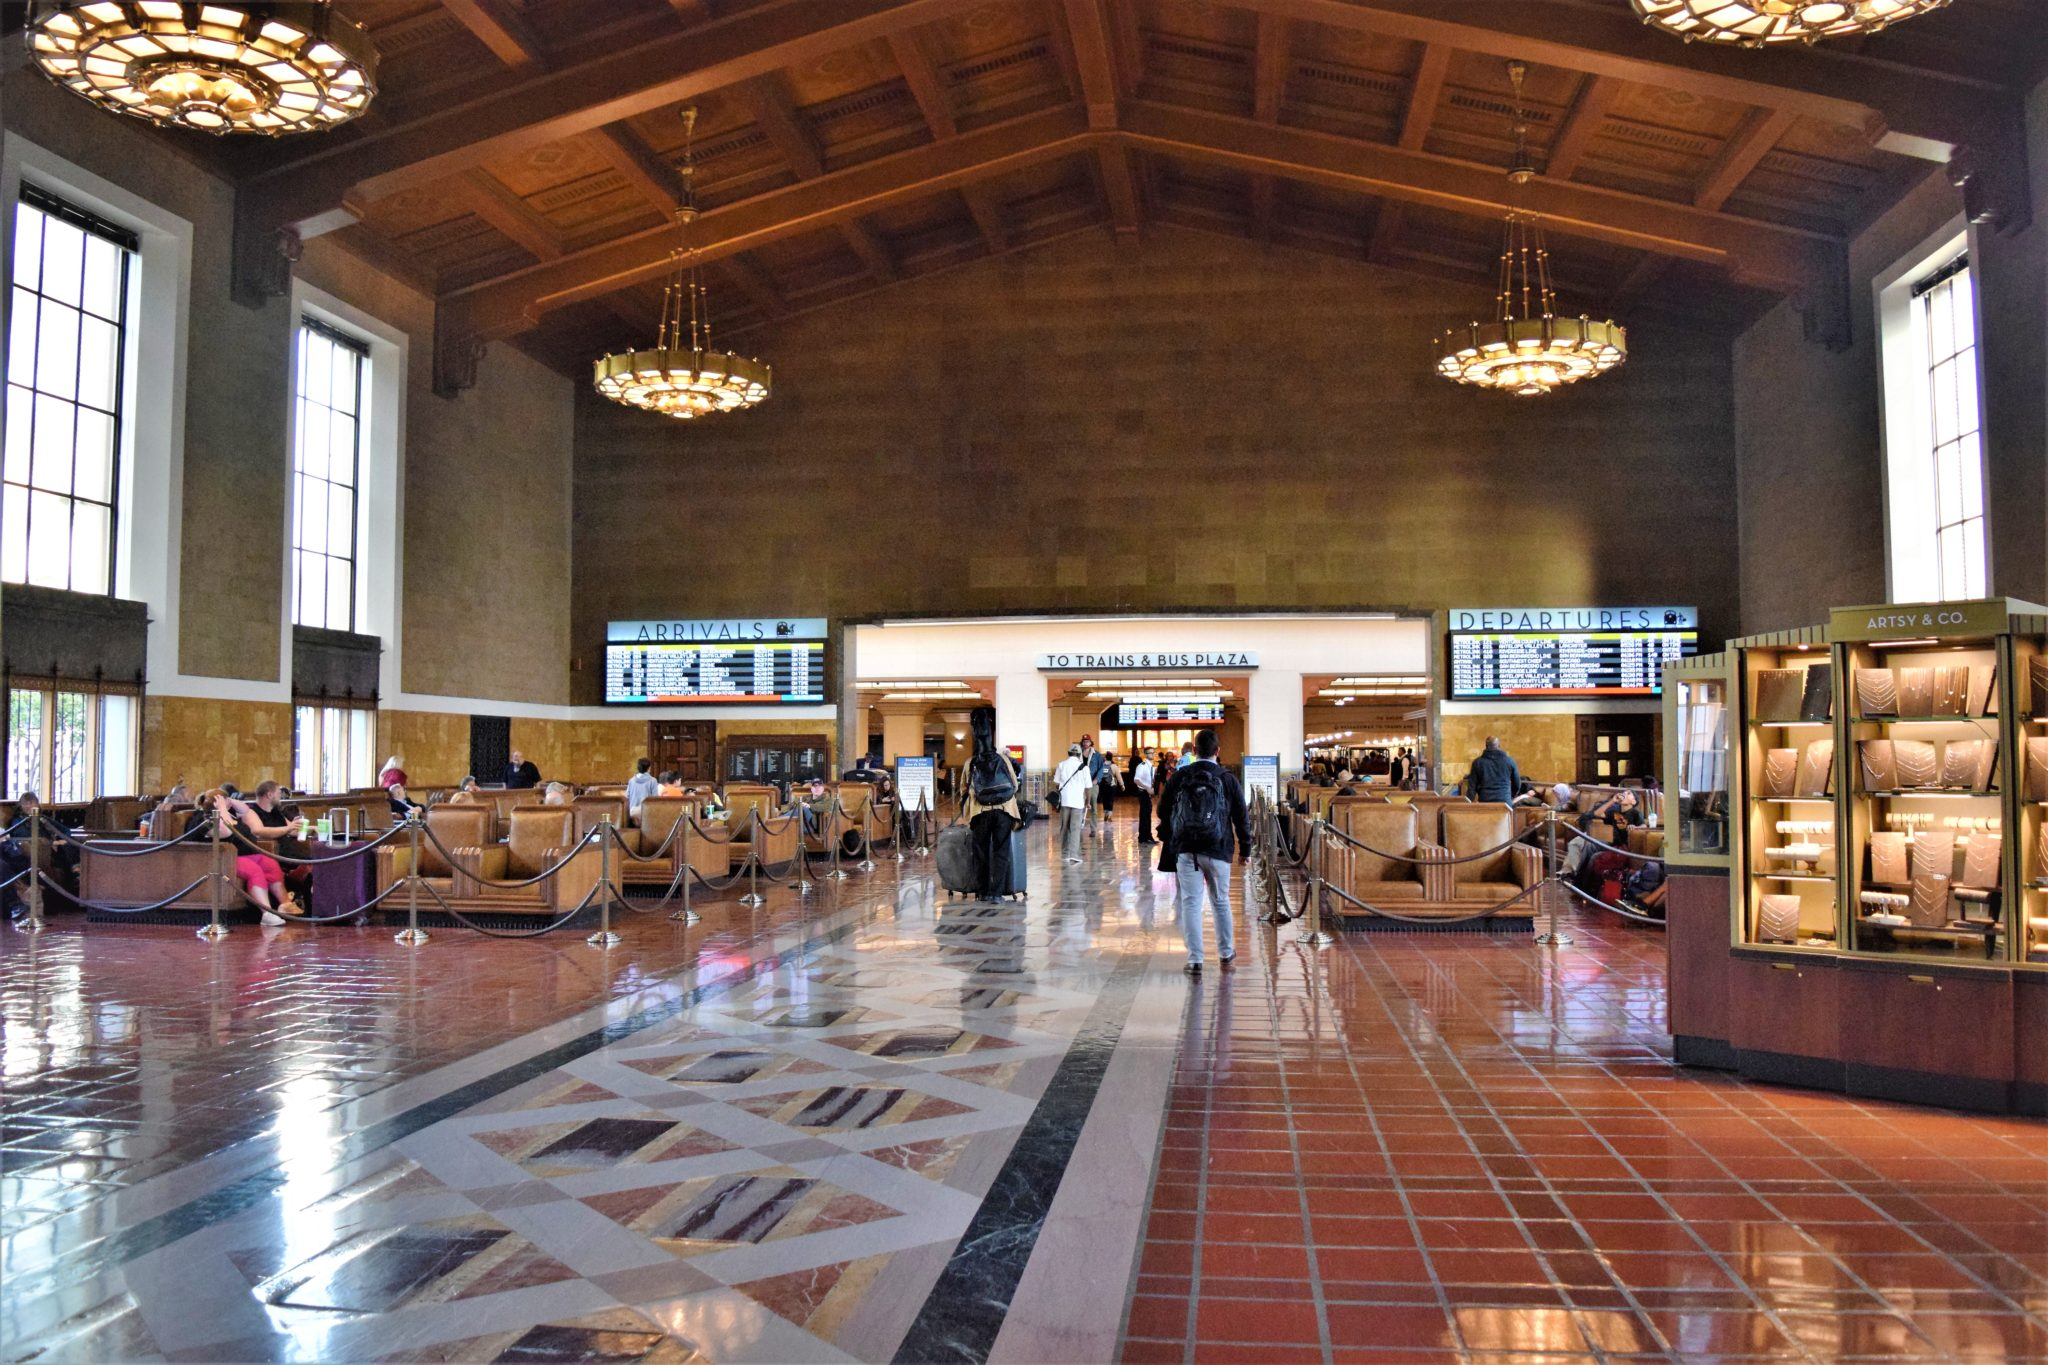 Inside Union Station Los Angeles, trains in california